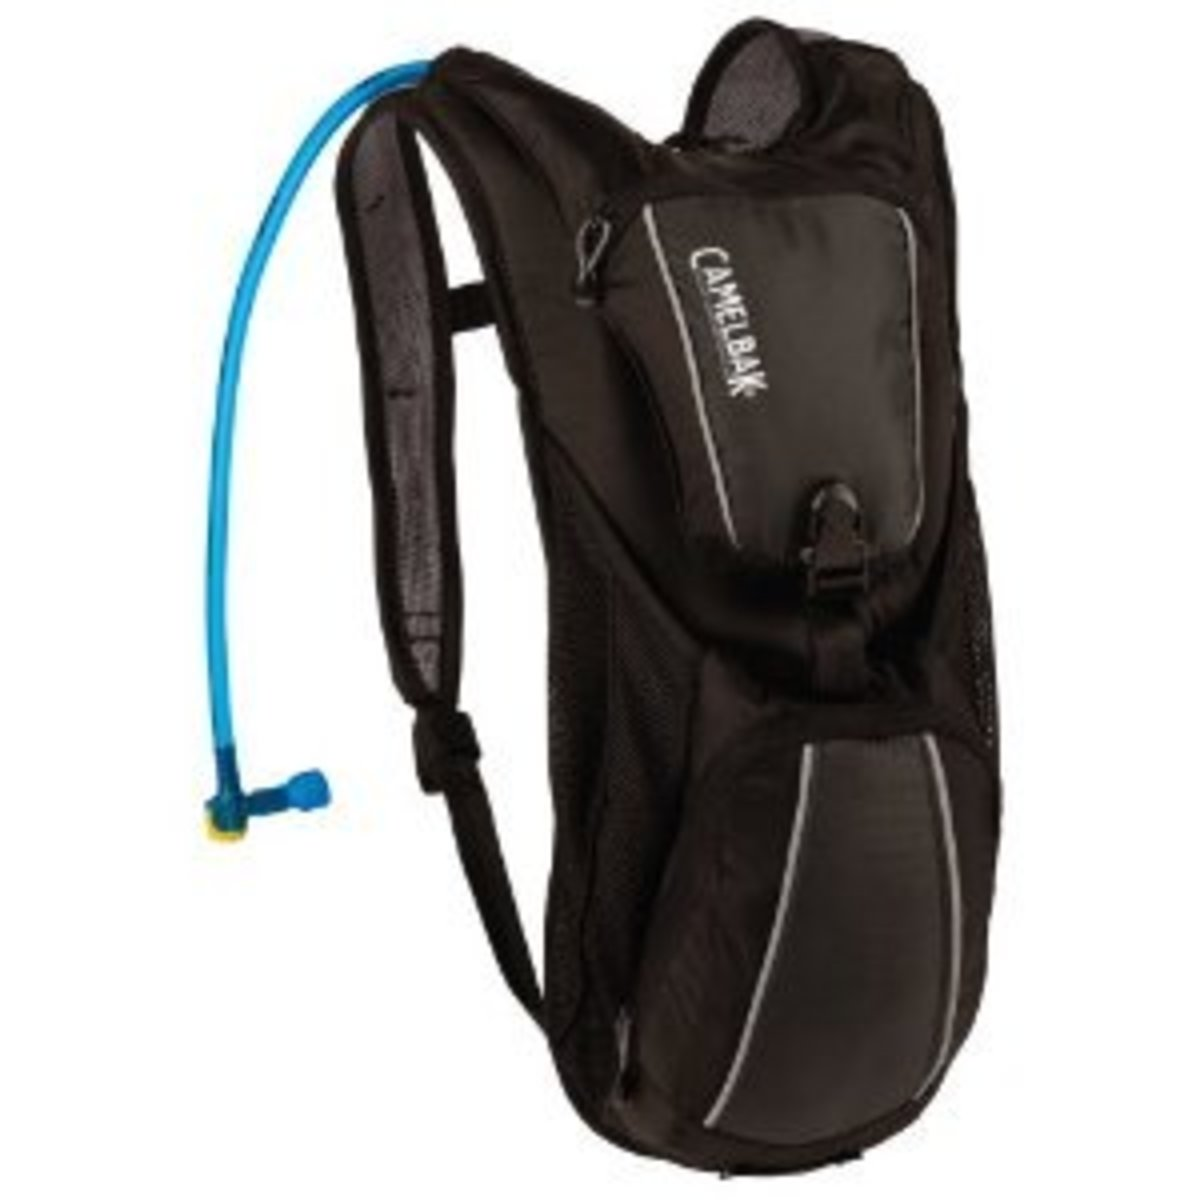 CamelBak Rogue 70-Ounce Hydration Pack